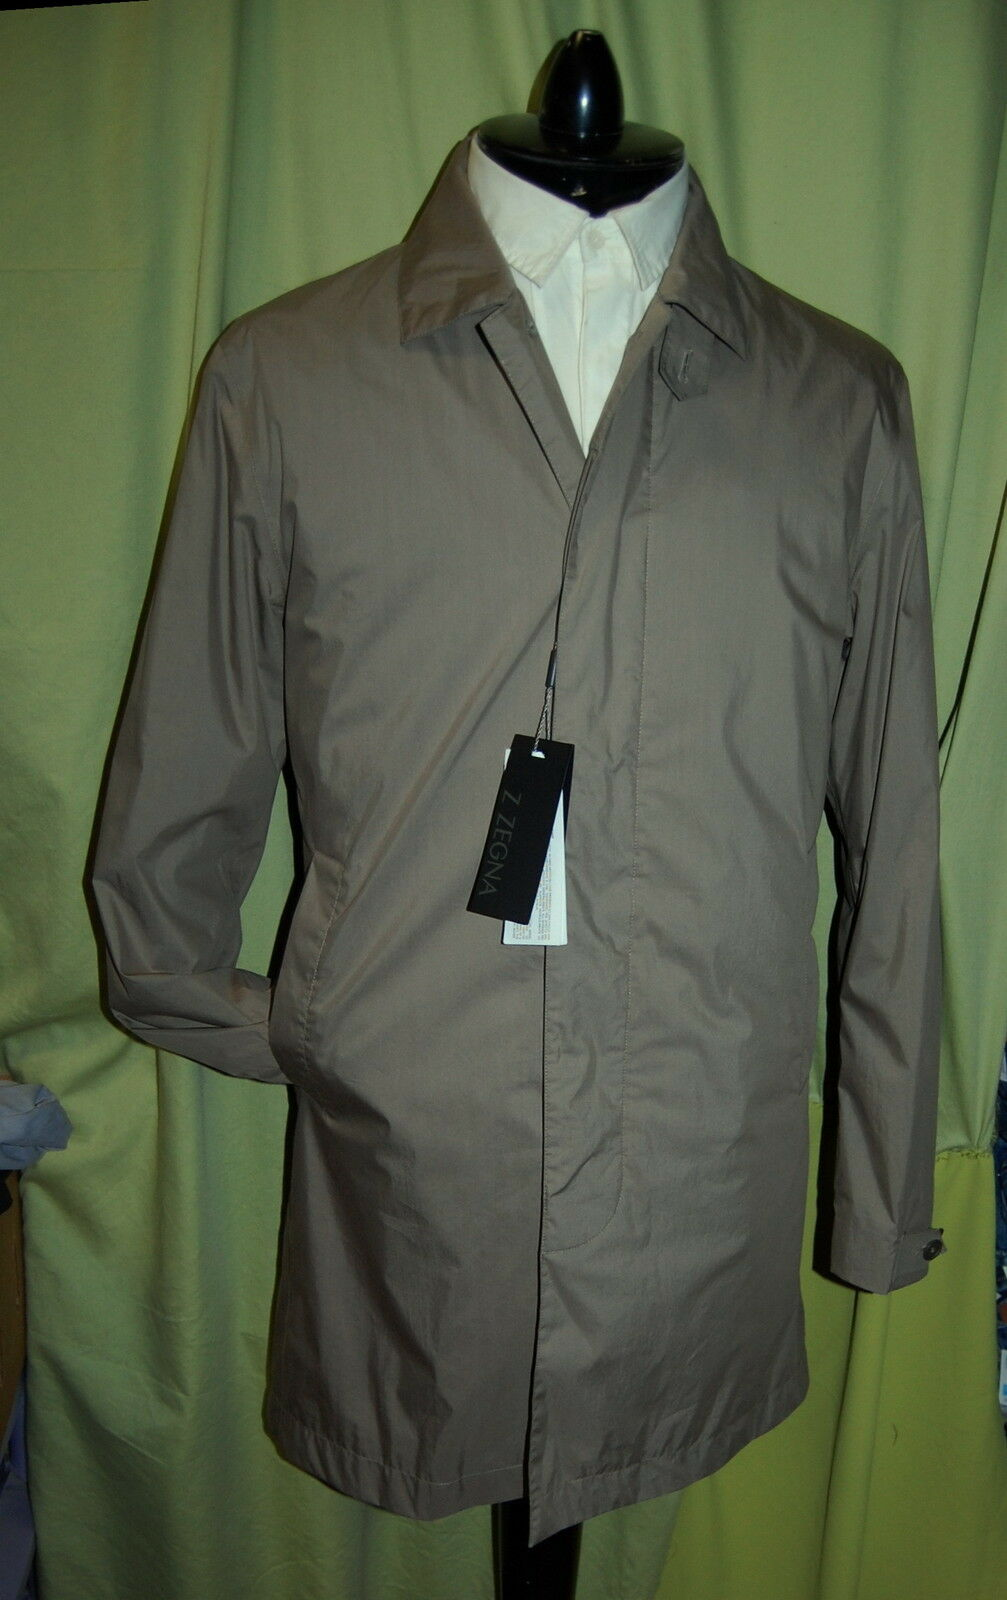 NWT Z ZEGNA mens khaki trench coat  S - Hydro Cotton Laminated Water Resistant